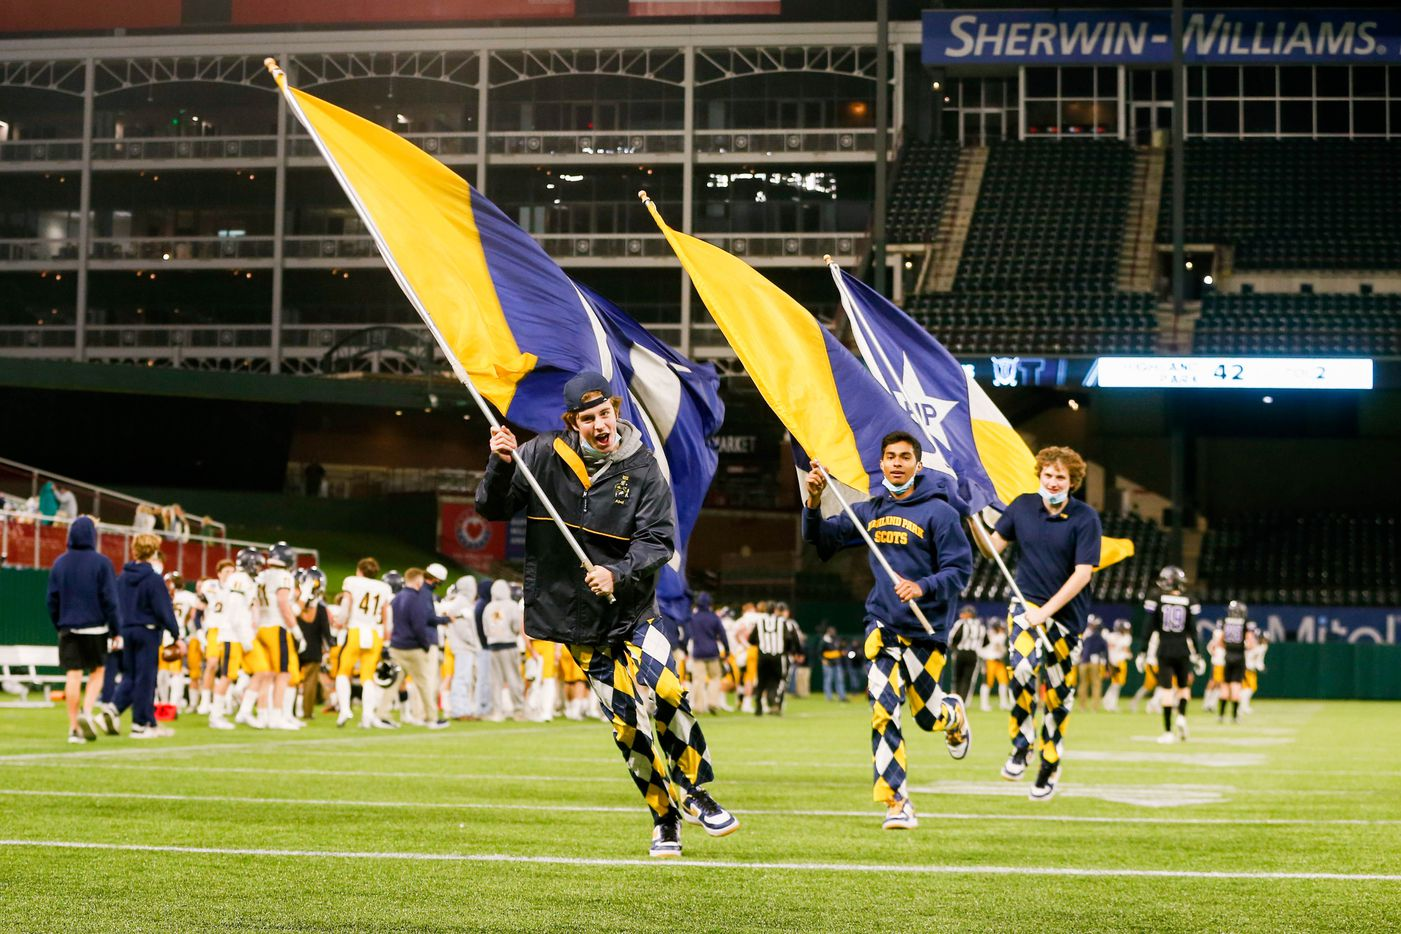 Highland Park flag runners run the field after a touchdown in the fourth quarter of a Class 5A Division I area-round playoff game against Frisco Independence at Globe Life Park in Arlington on Thursday, Dec. 17, 2020. Highland Park won 42-20. (Juan Figueroa/ The Dallas Morning News)